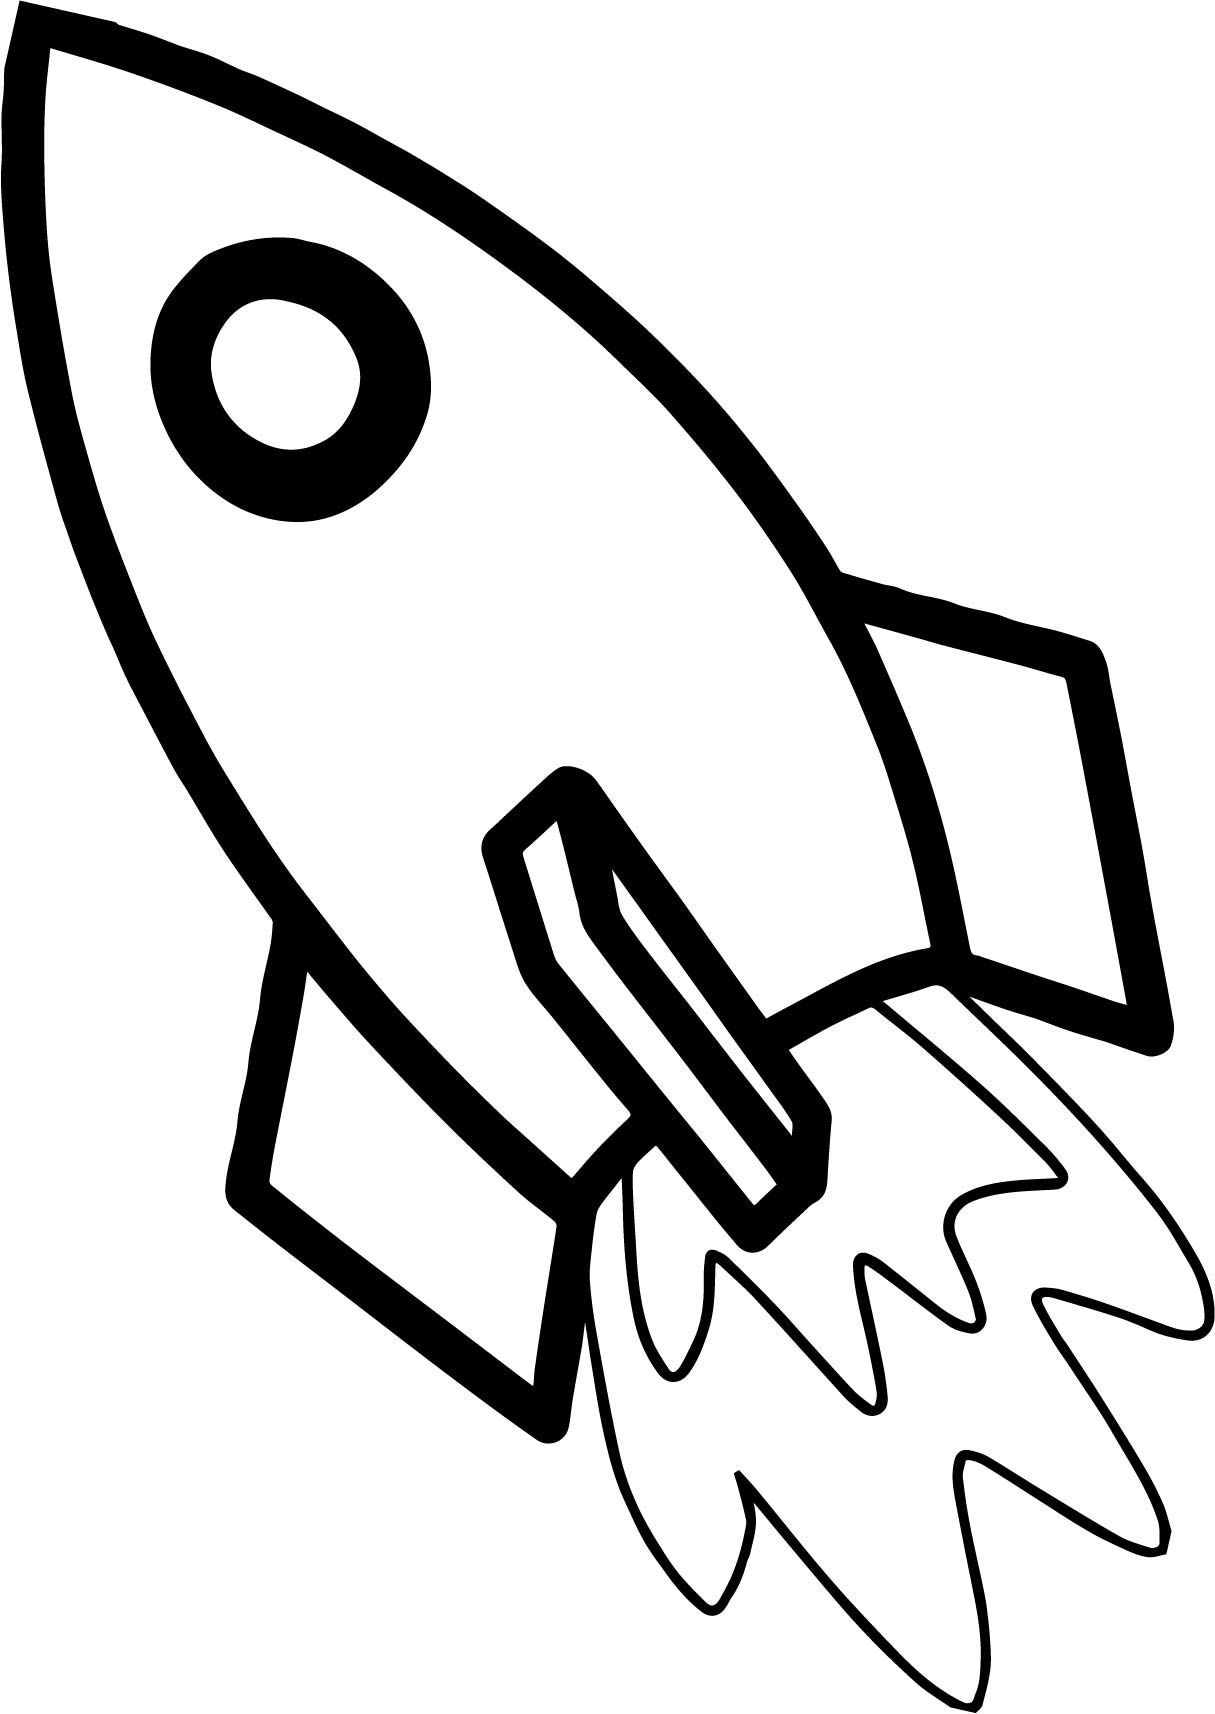 Clipart rocket colouring page. Astronaut coloring education pages